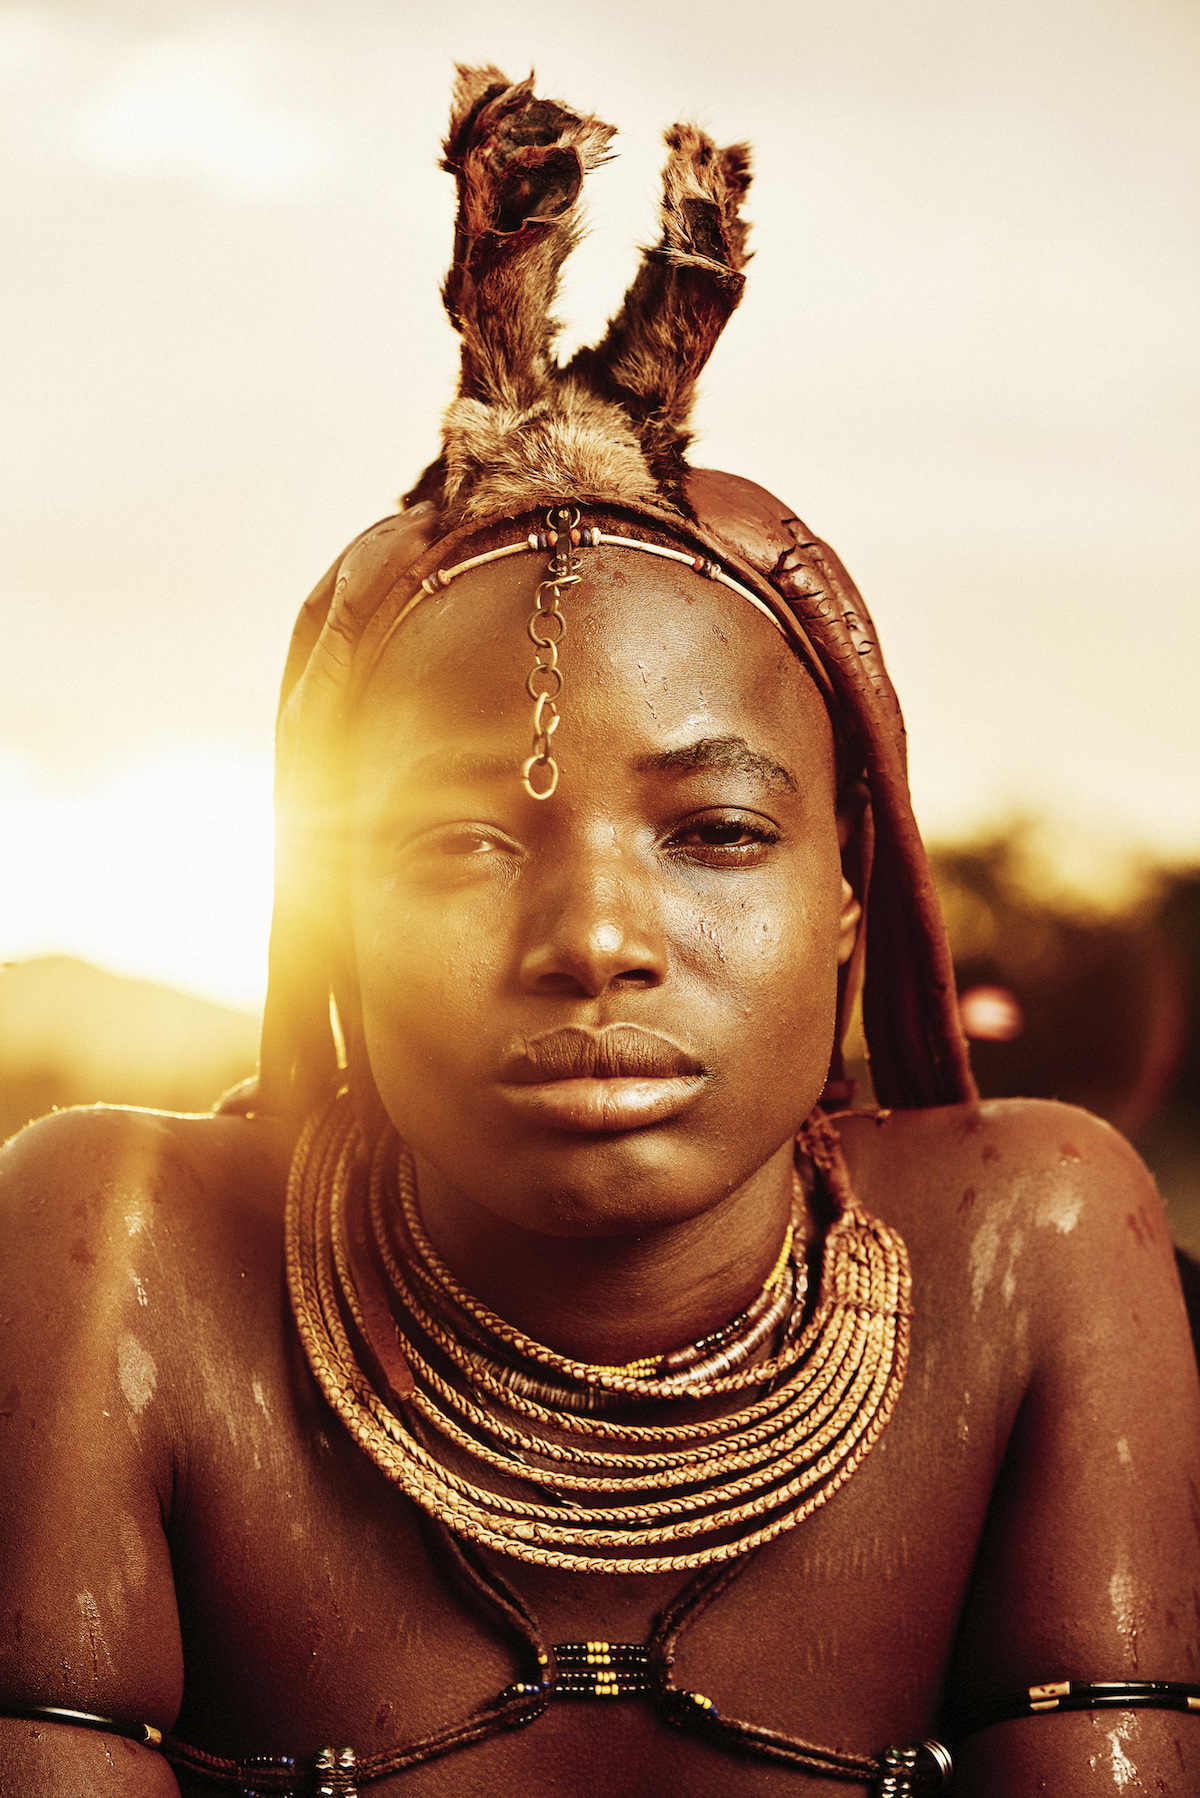 Portrait of Himba from Namibia by Adam Koziol